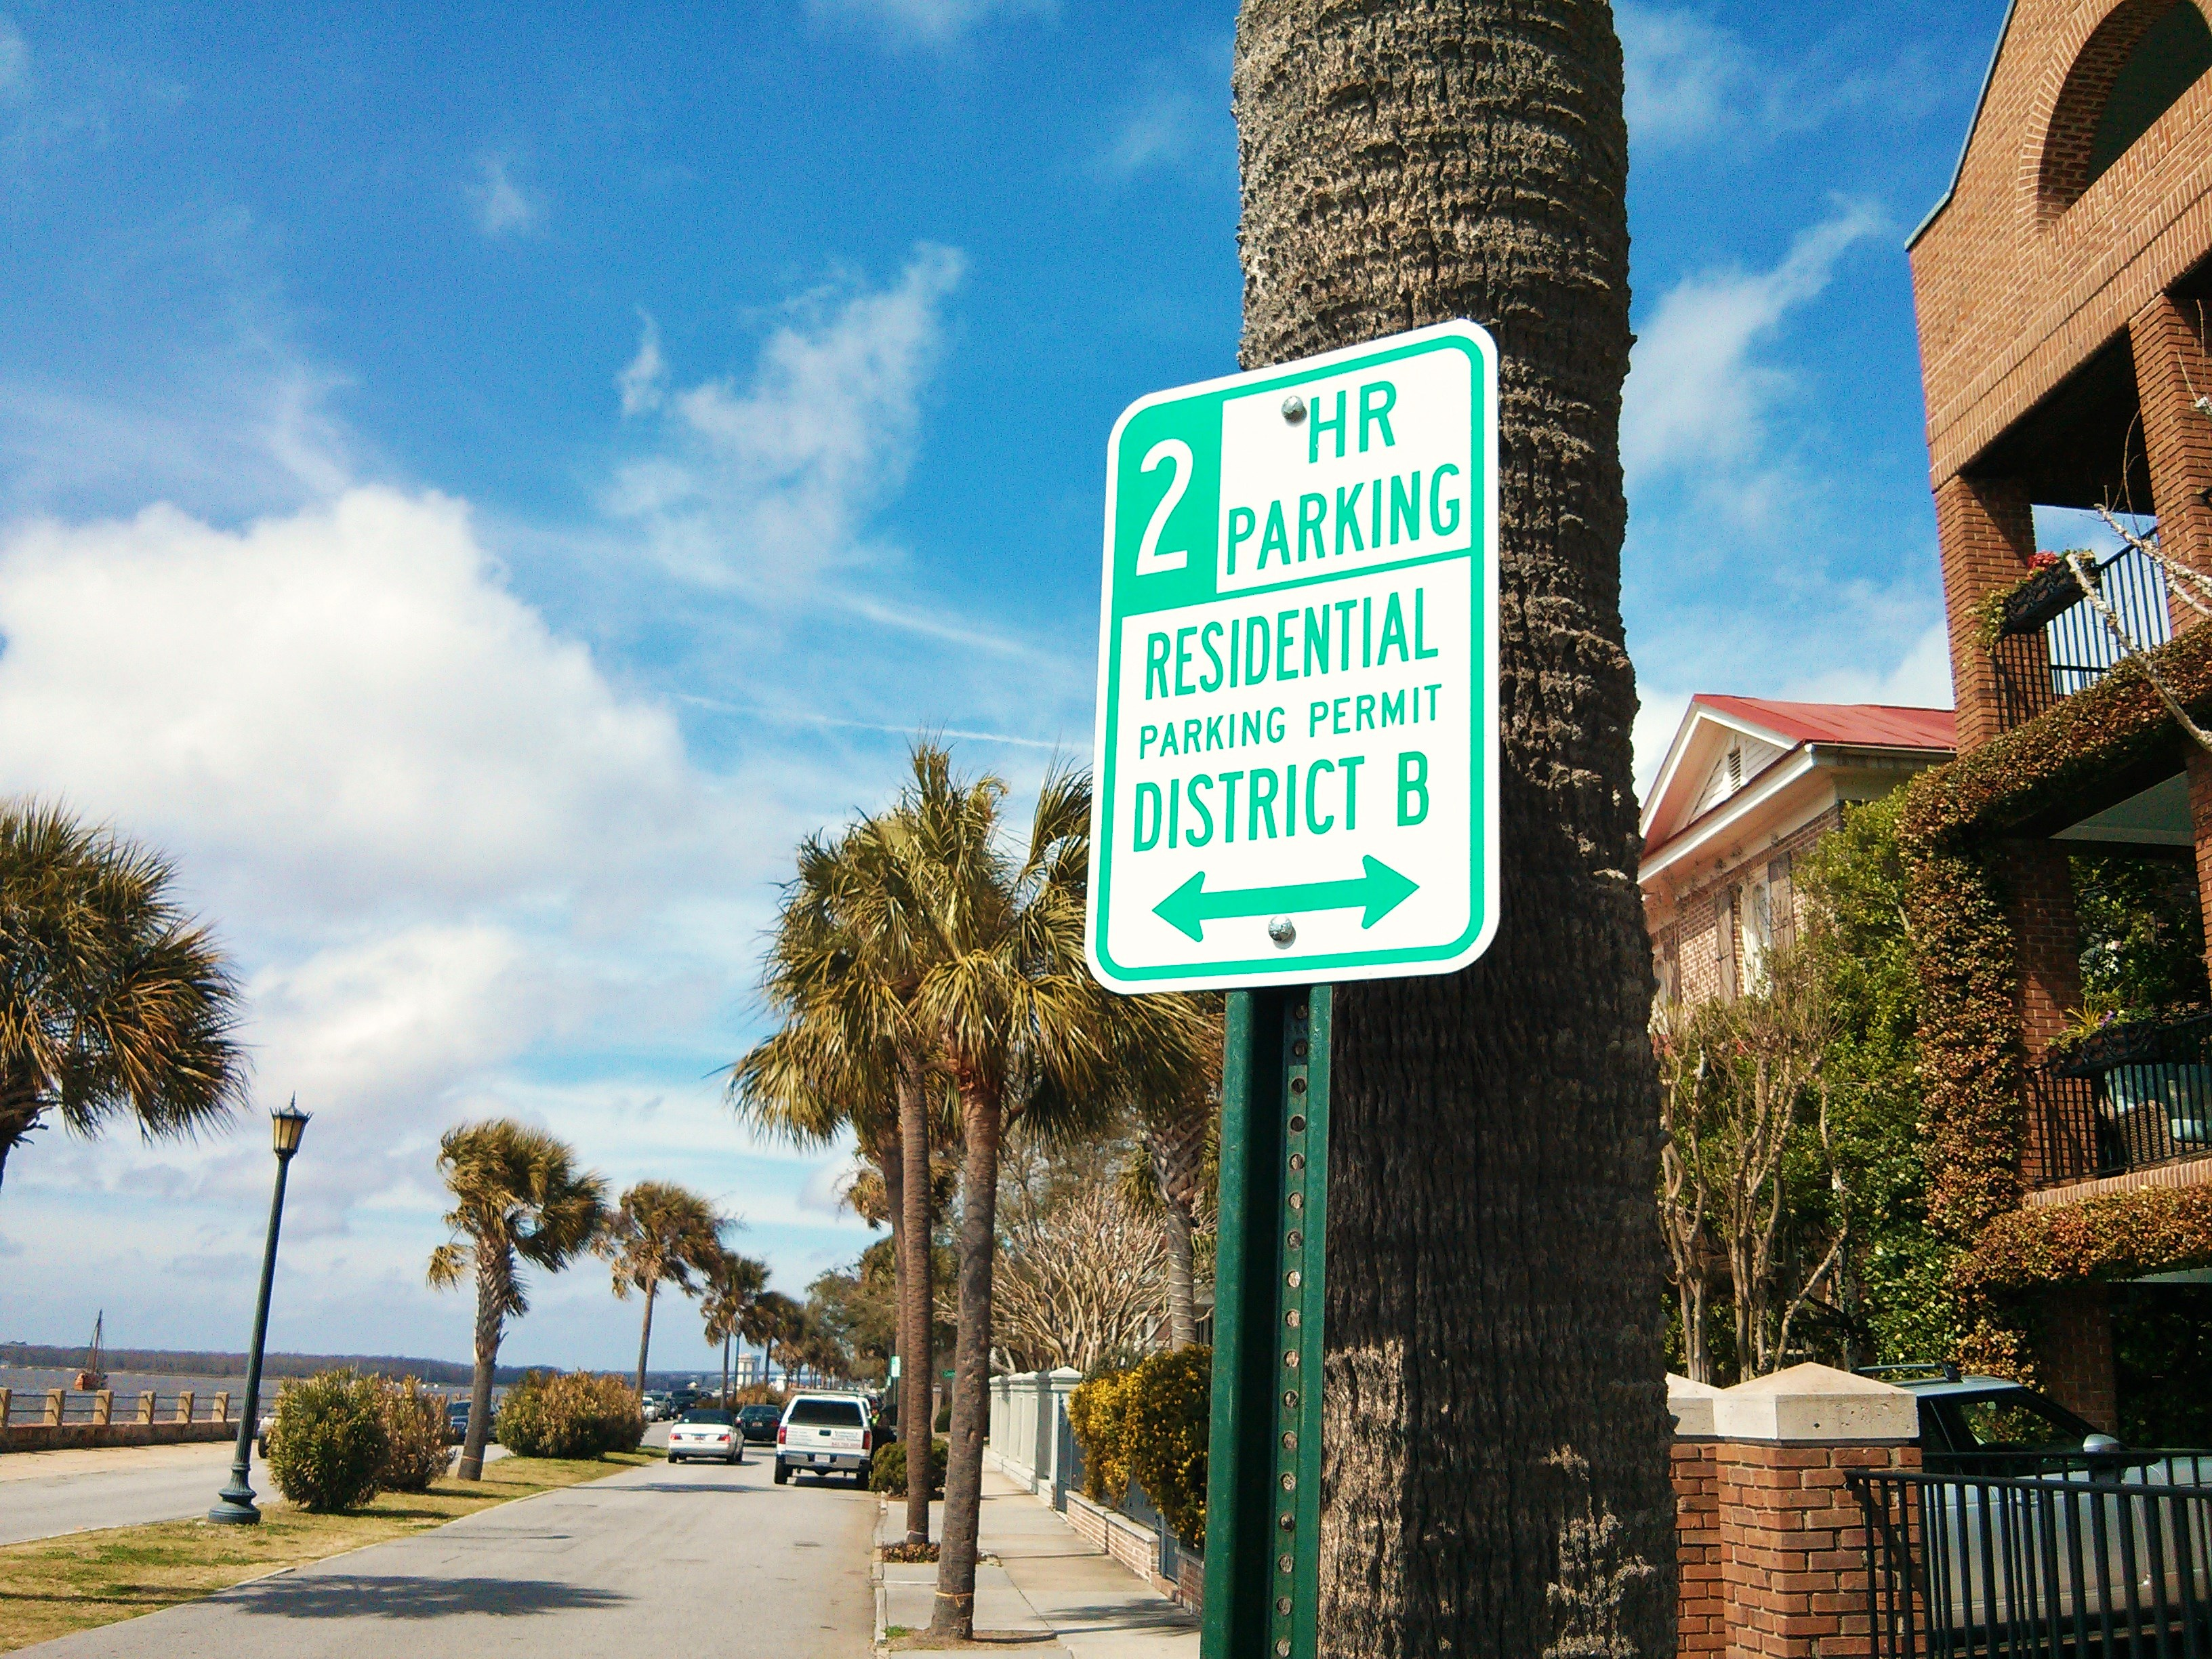 Charleston Parking Signs Are Confusing You Can Park There Without A Permit But Only